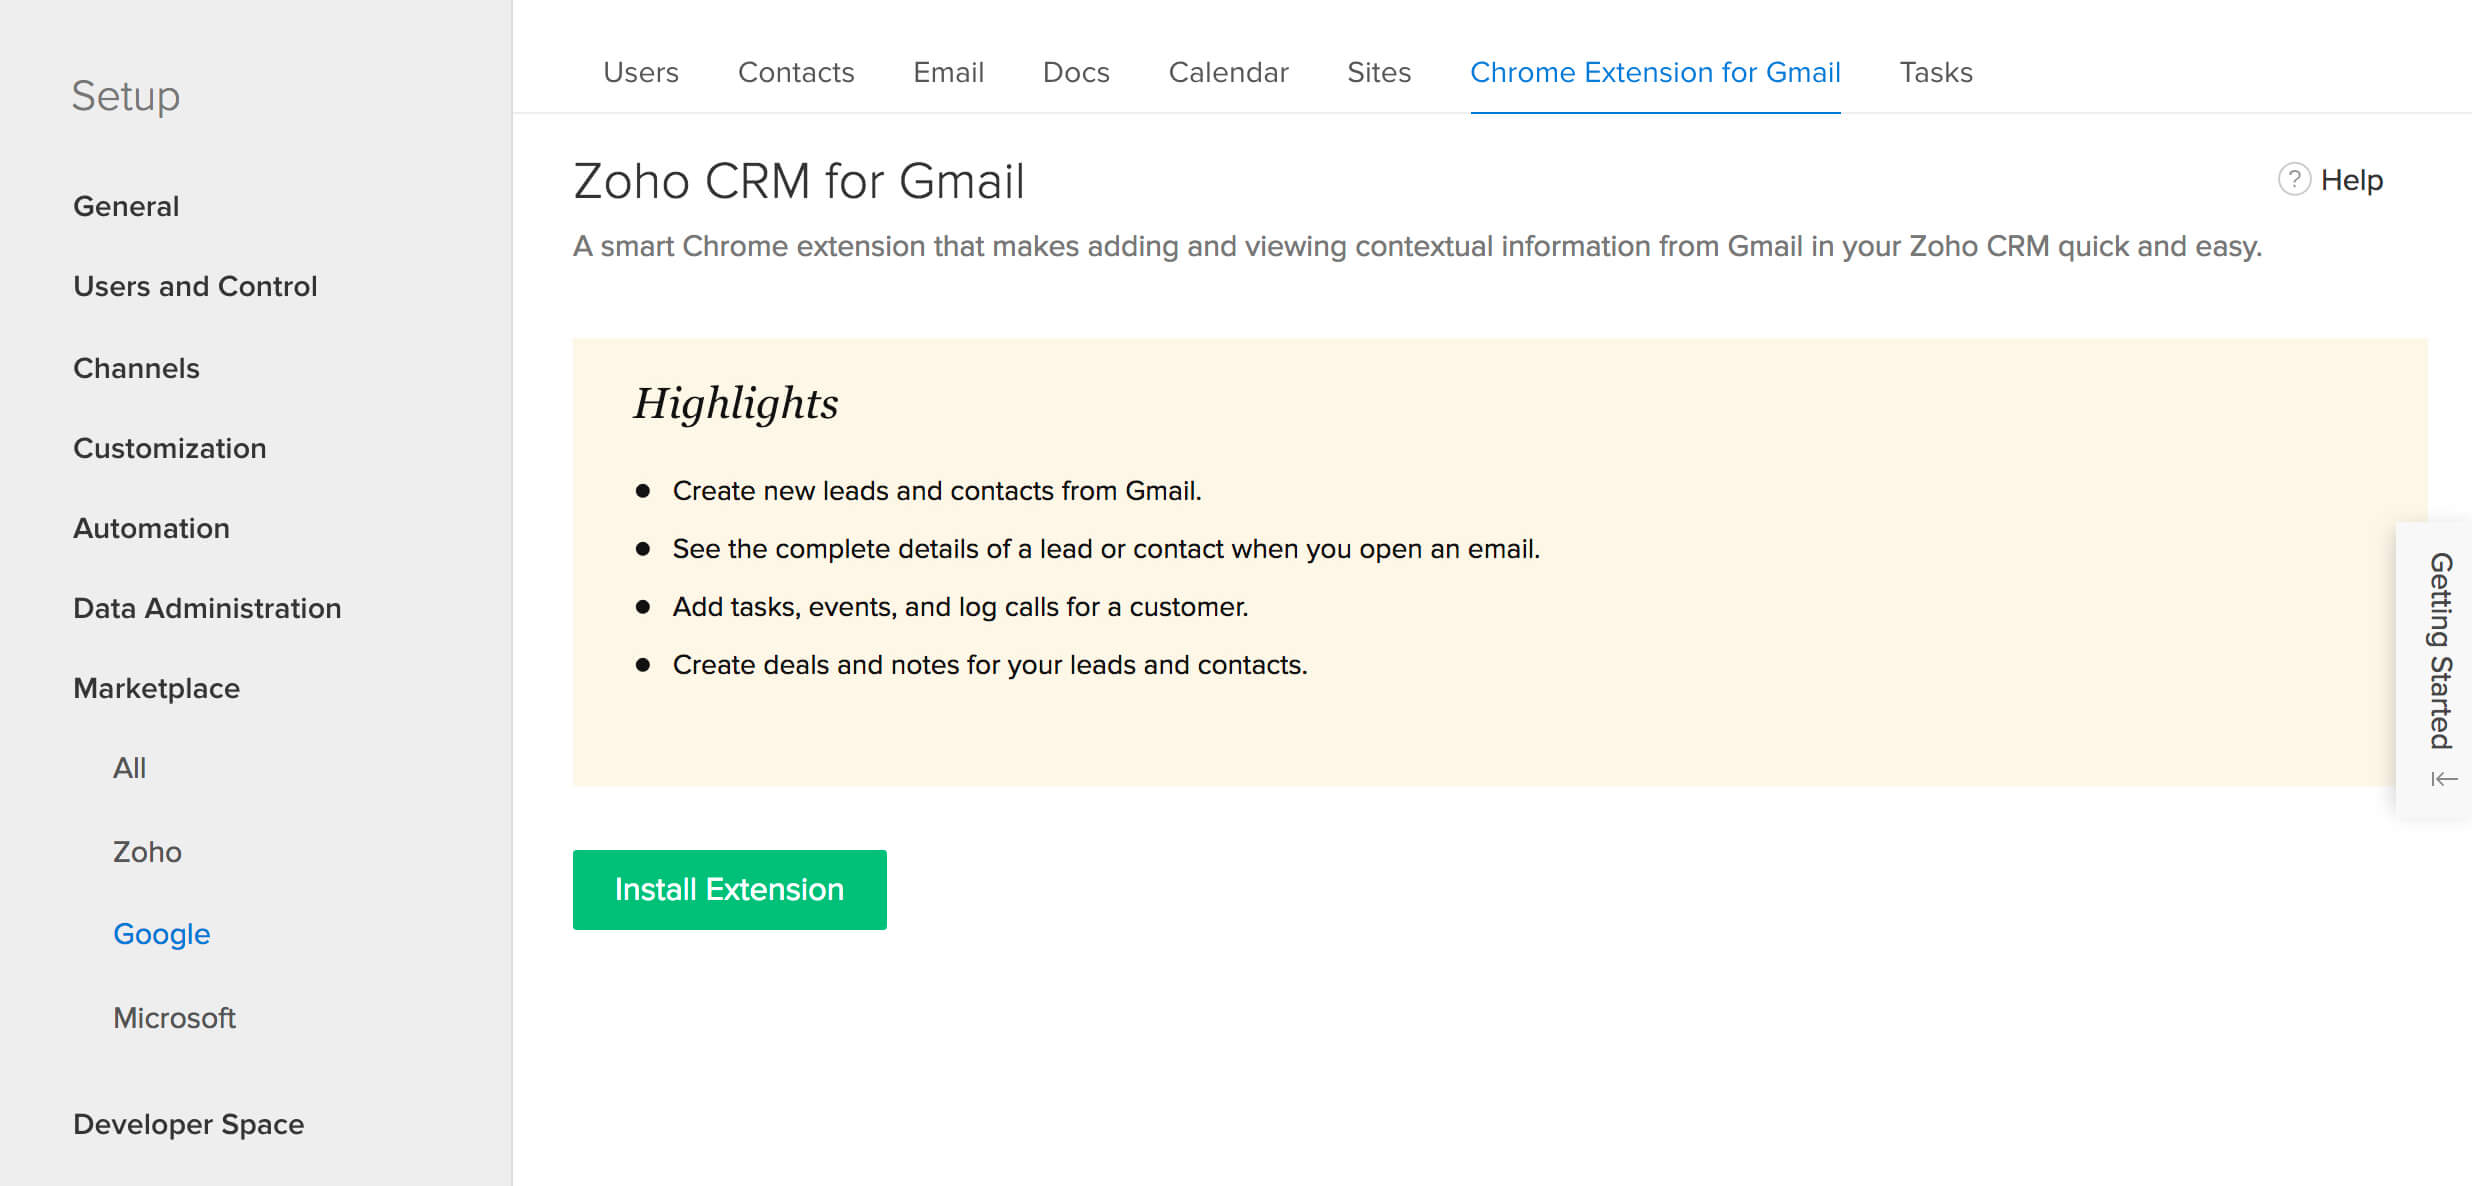 Visit Zoho CRM to install Chrome's Zoho CRM for Gmail